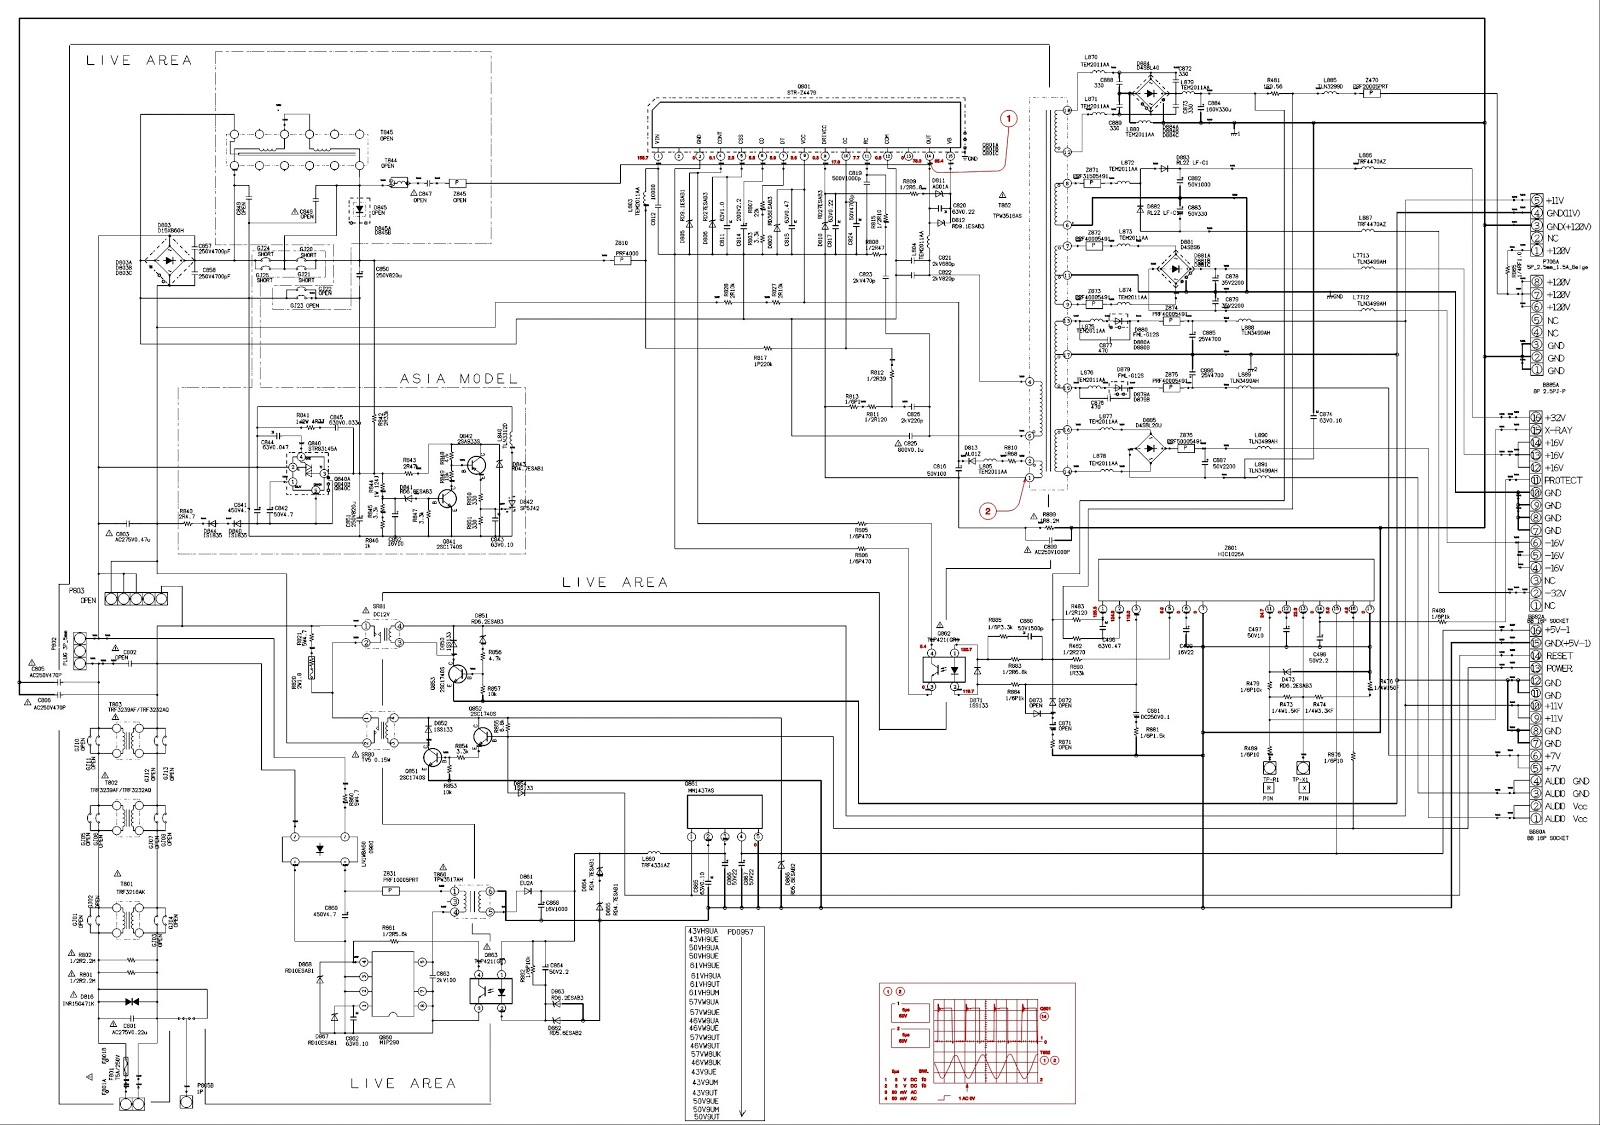 power%2B %2Bsmps toshiba 50 inch projection tv smps schematic electro help toshiba motor wiring diagram at edmiracle.co